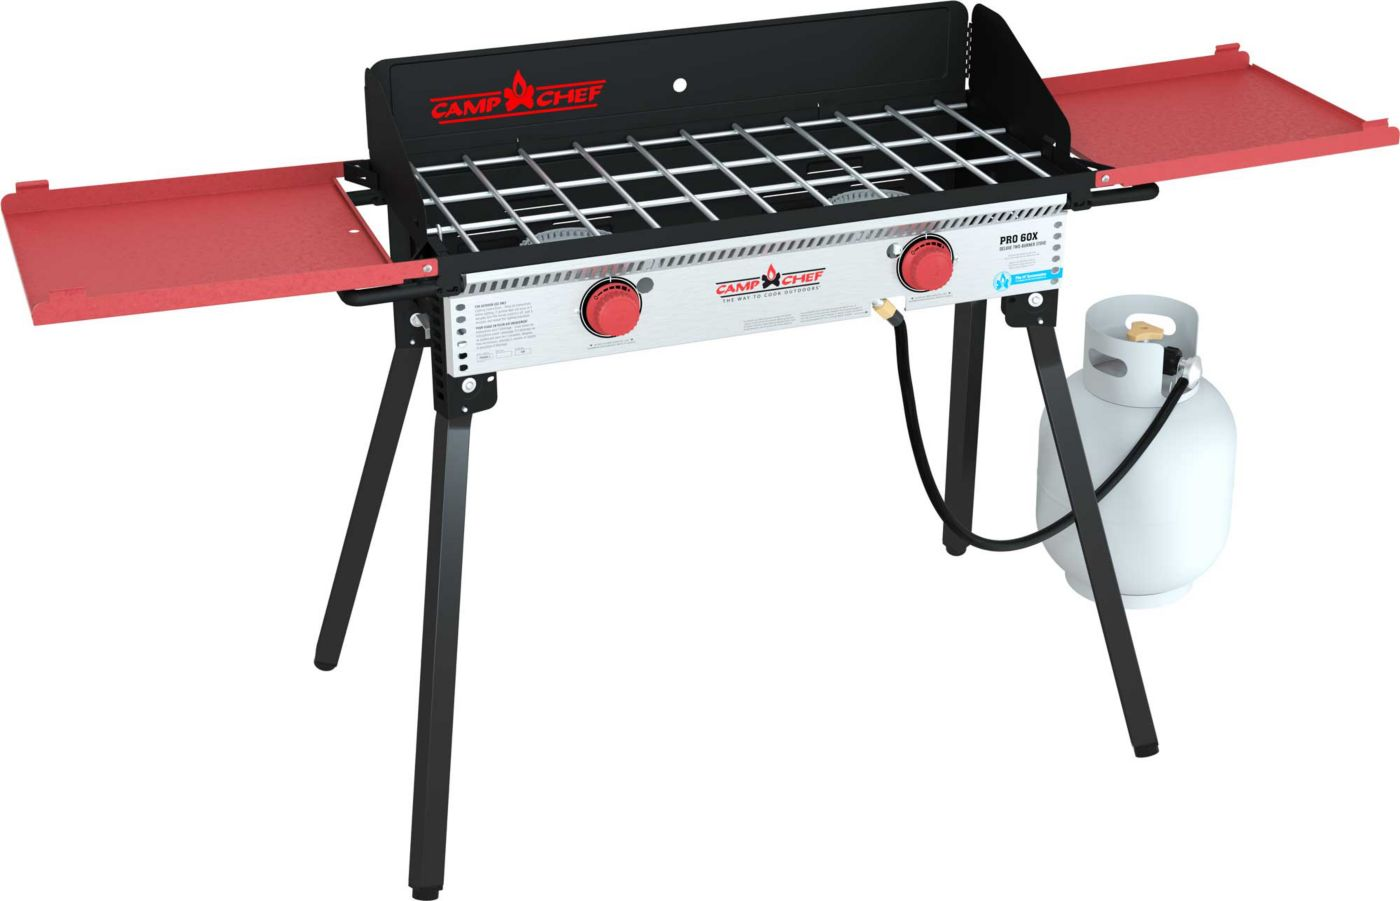 Camp Chef Pro 60X Two-Burner Stove